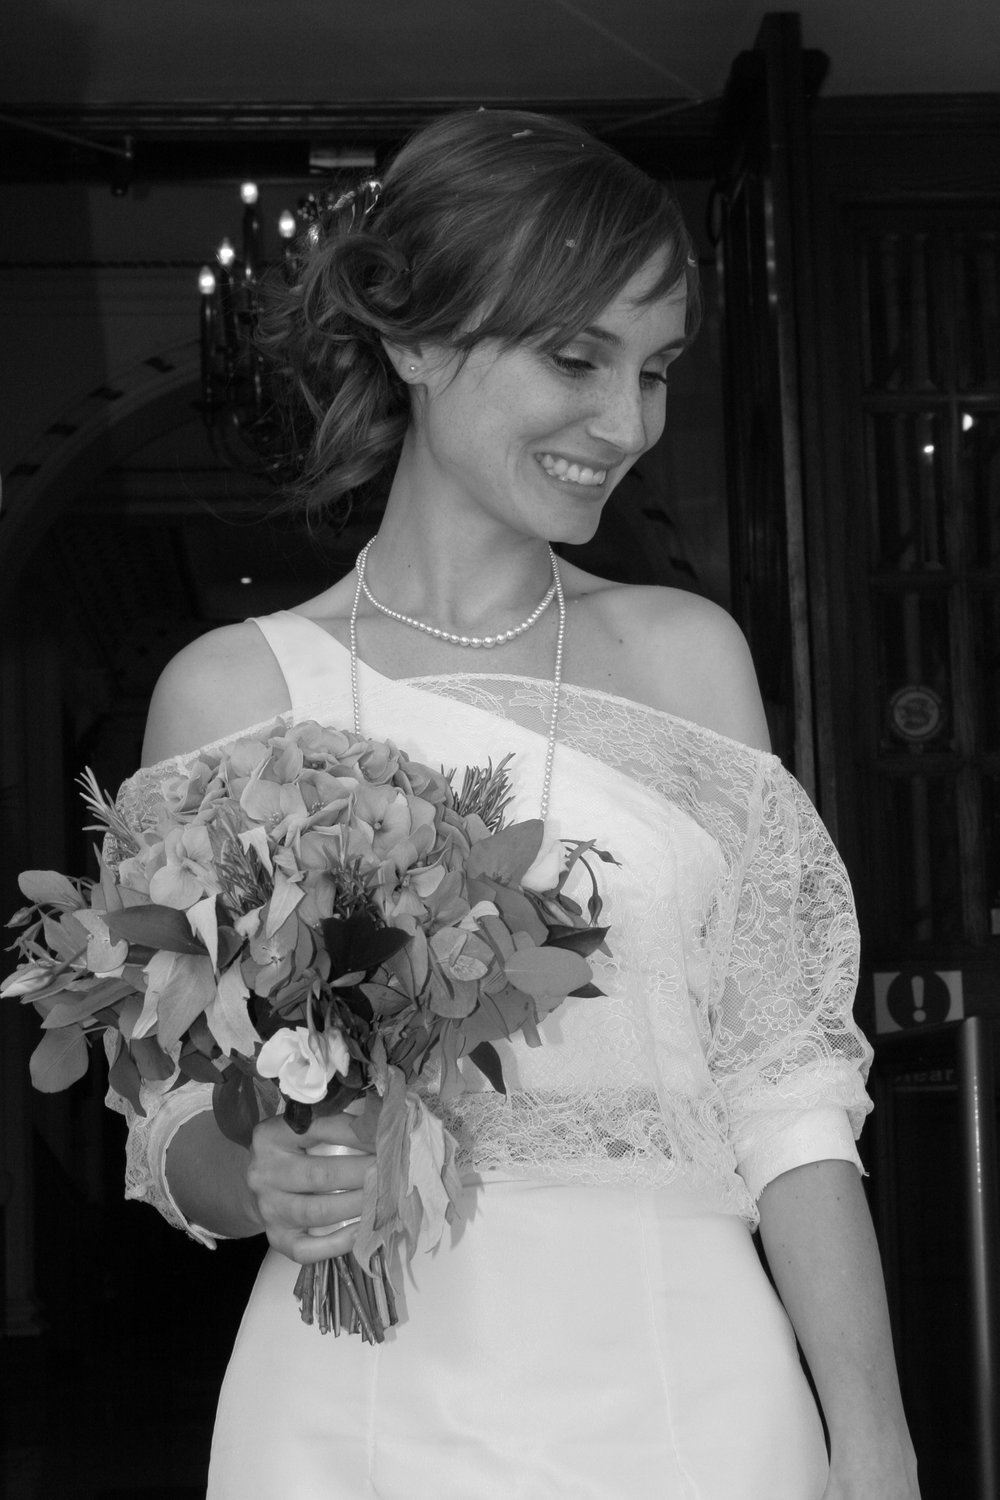 Alexandra-bespoke-wedding-dress-Kate-Beaumont-14.jpg